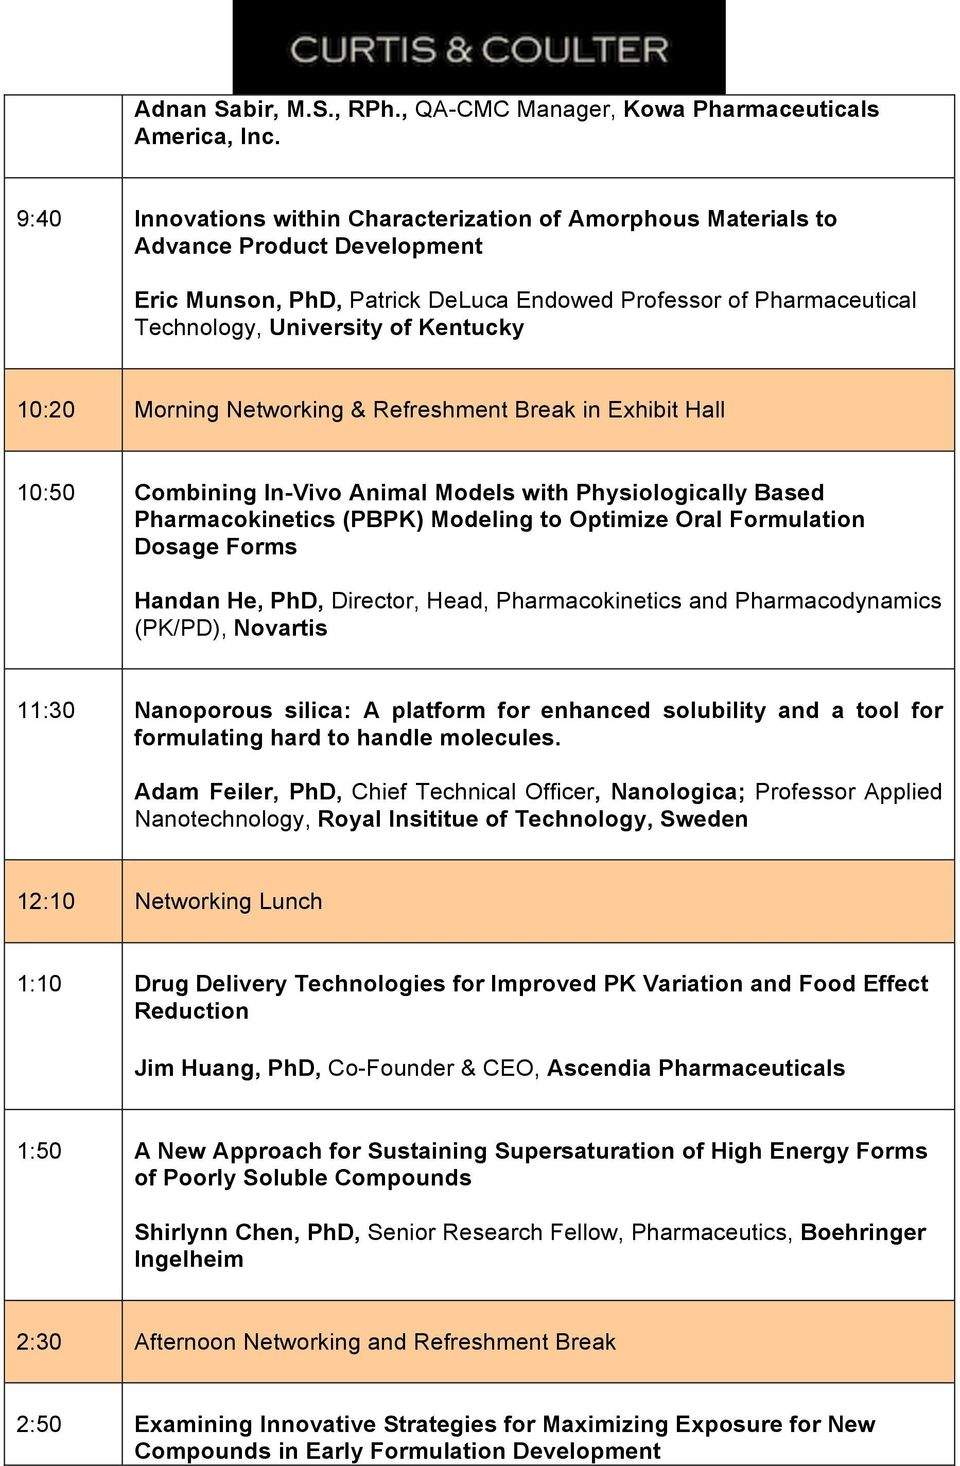 10:20 Morning Networking & Refreshment Break in Exhibit Hall 10:50 Combining In-Vivo Animal Models with Physiologically Based Pharmacokinetics (PBPK) Modeling to Optimize Oral Formulation Dosage